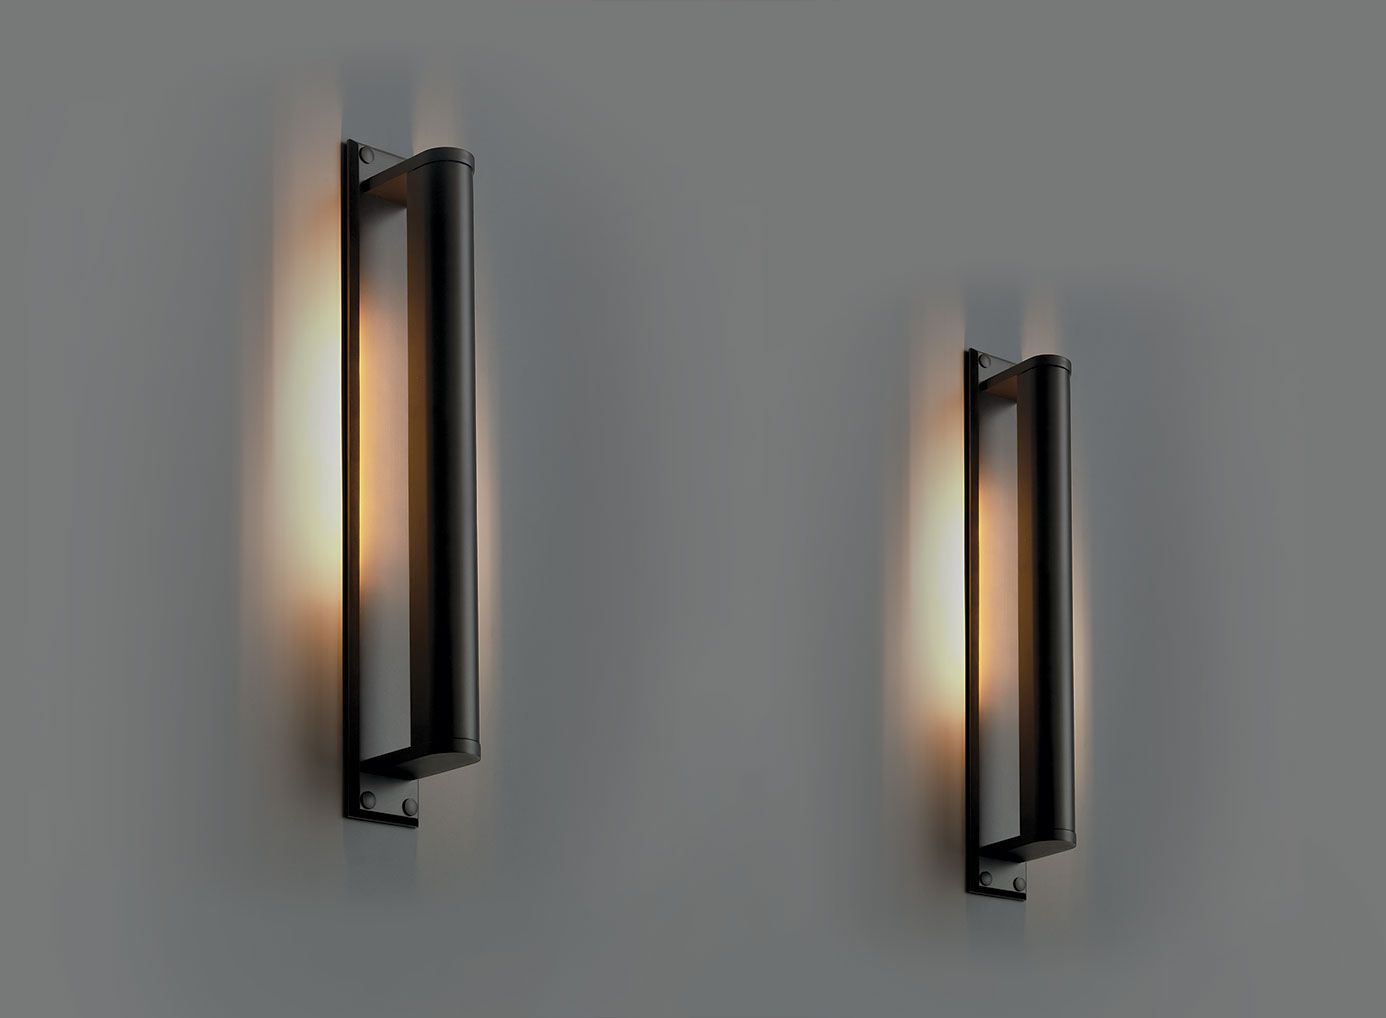 Meudon Sconce for the powder room? available in satin nickel Jonathan Browning Studios ...